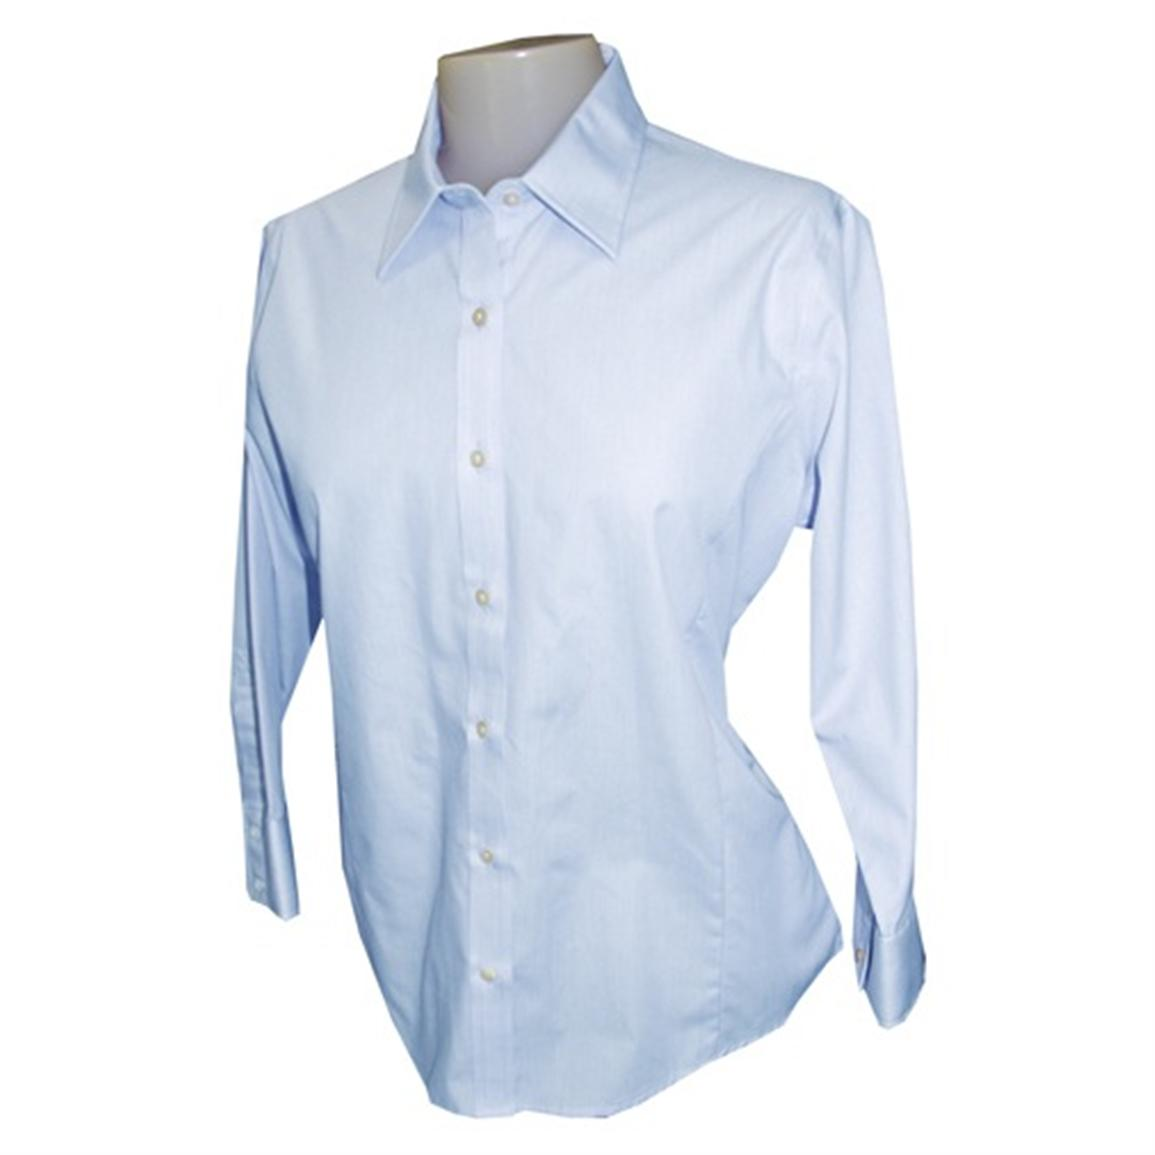 Women's Feather Stripe Broadcloth Button-down Shirt from Jockey®, Dutch Blue